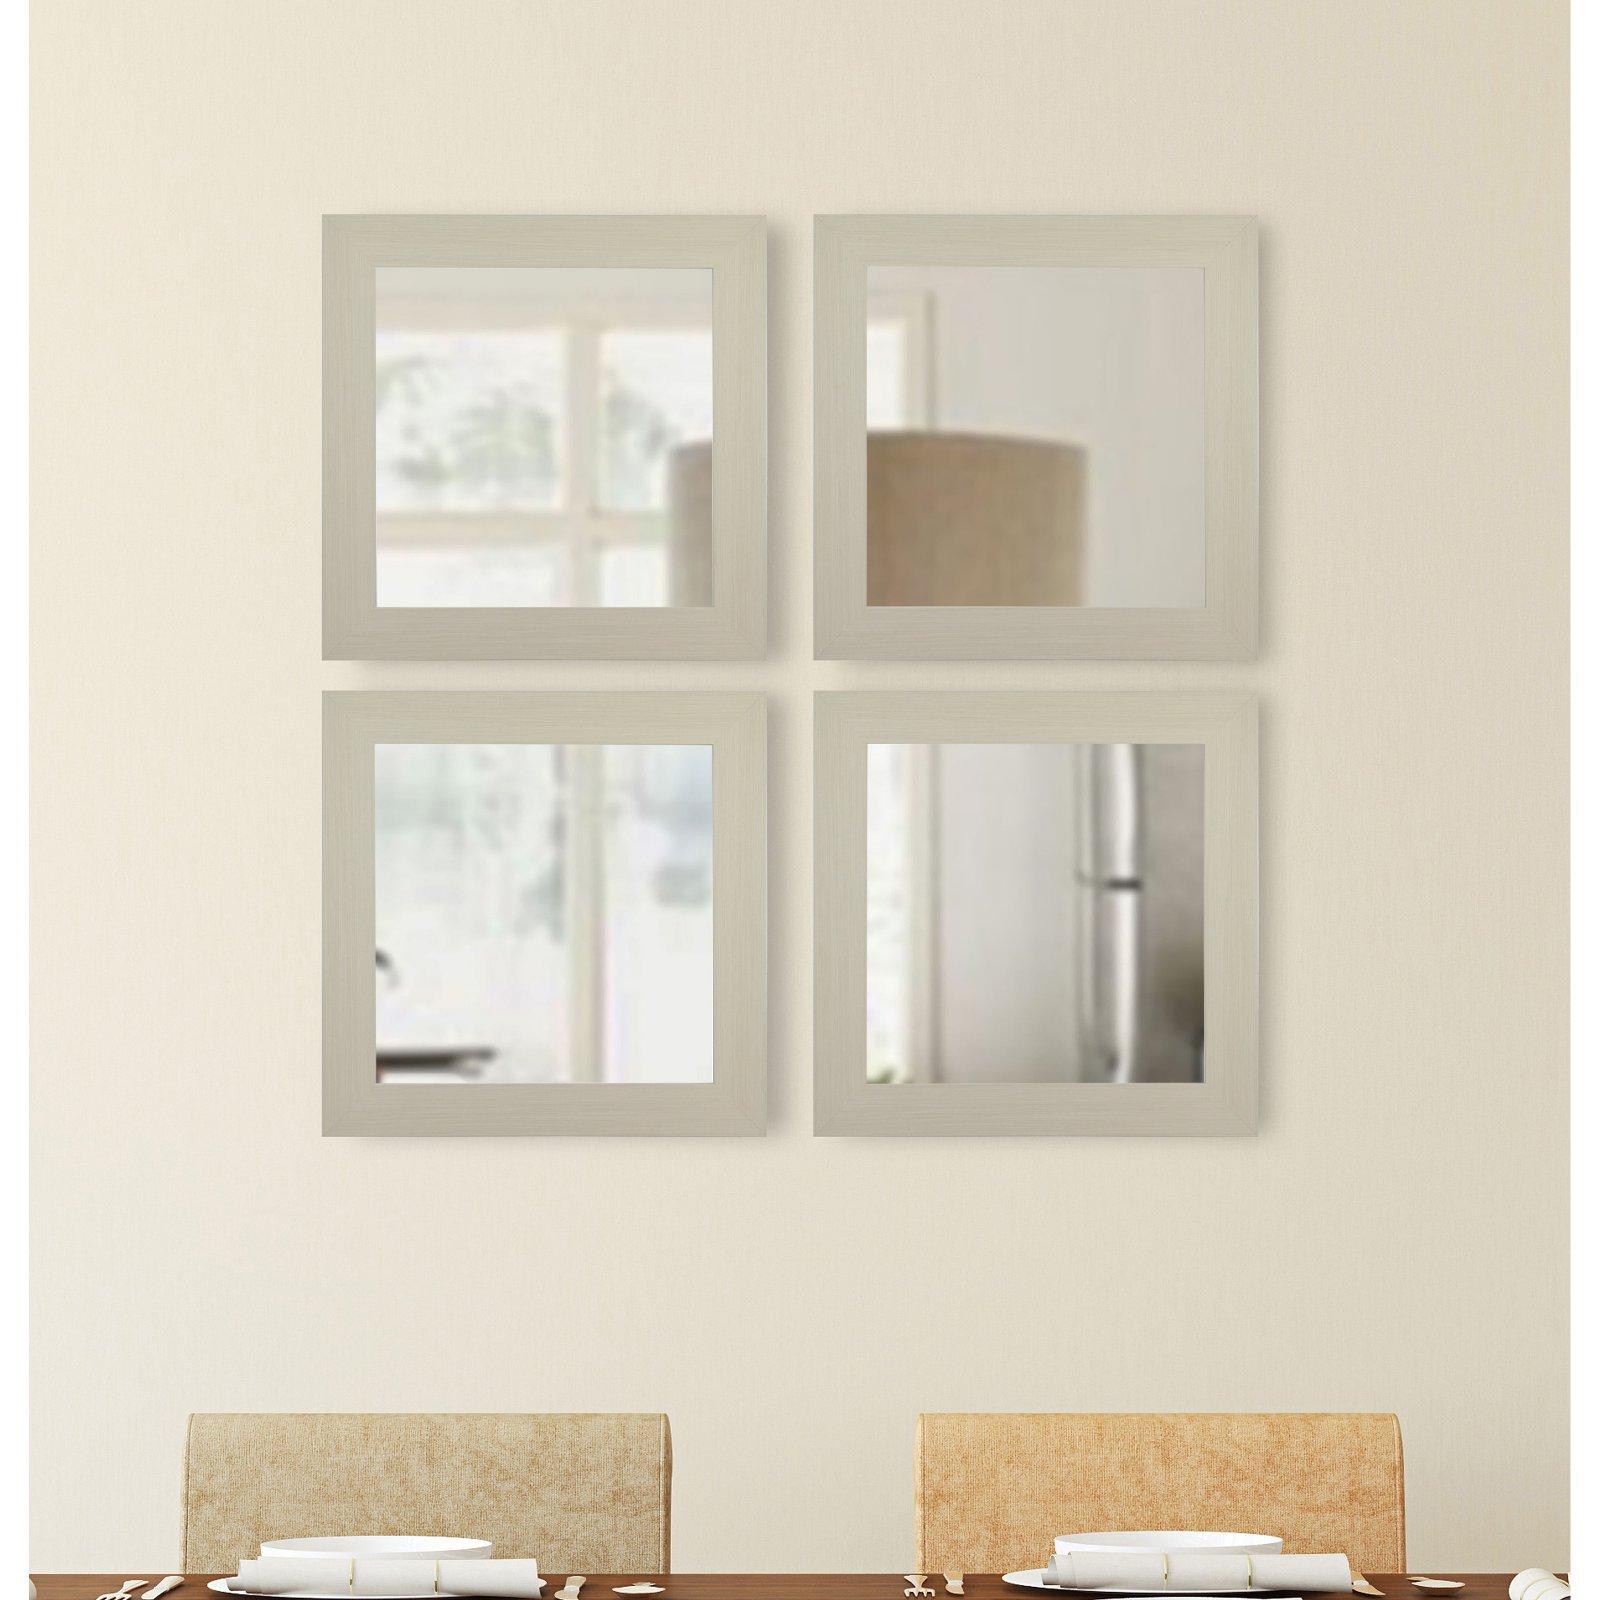 Rayne Mirrors Arctic Square Wall Mirror - Set of 4